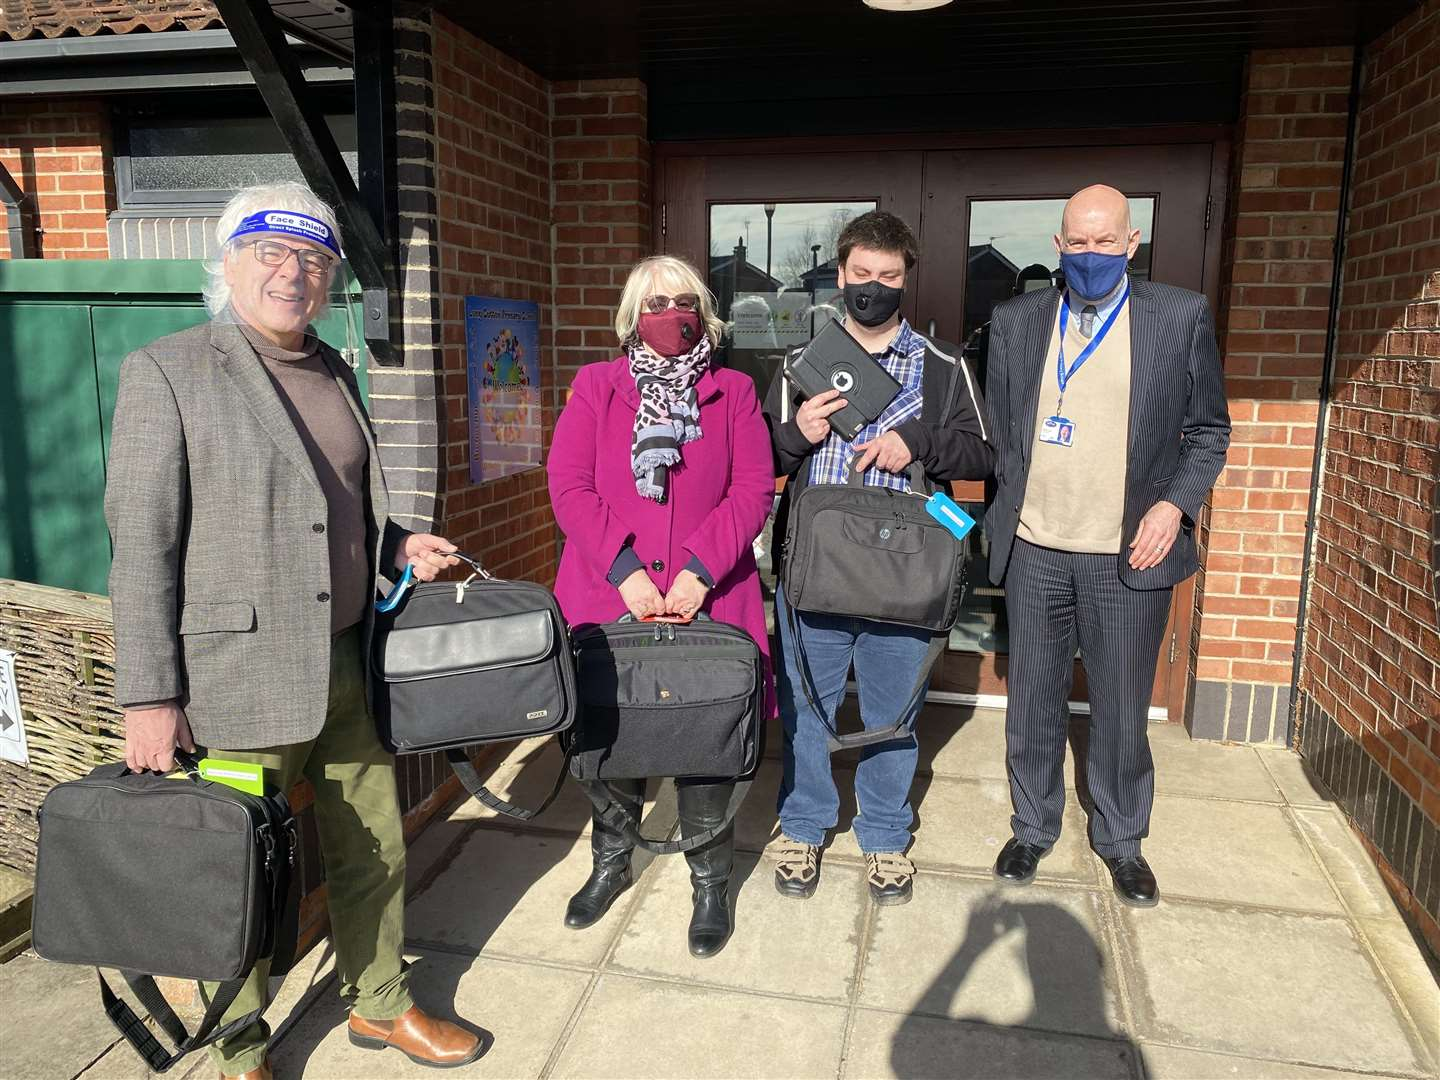 Gadgets are handed over to Bill Lord, headteacher at Long Sutton Primary School by Chris Carter, Patricia Wells and Josh Simson of Long Sutton Market House (44731047)